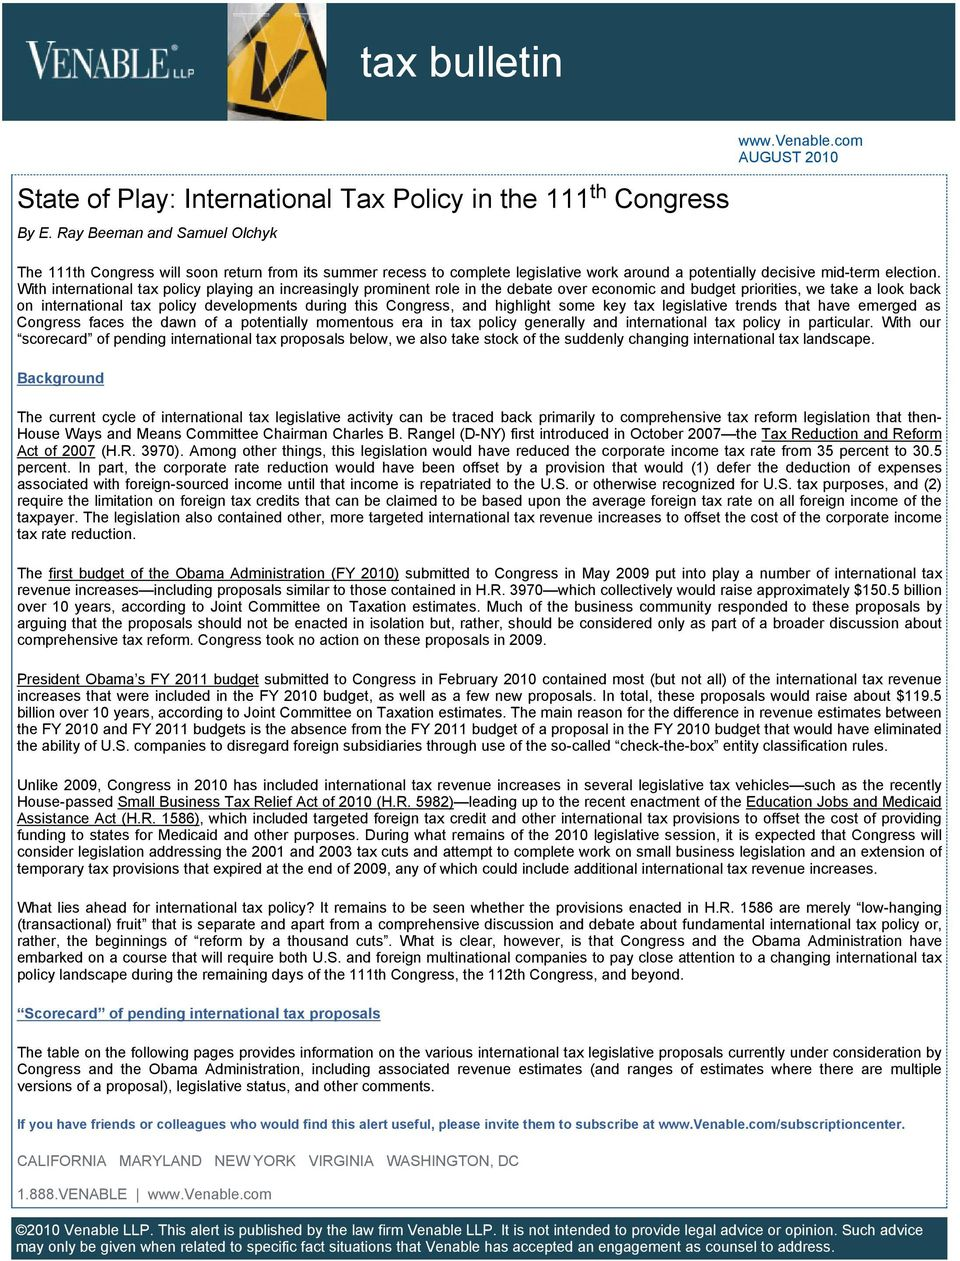 With international tax policy playing an increasingly prominent role in the debate over economic and priorities, we take a look back on international tax policy developments during this Congress, and